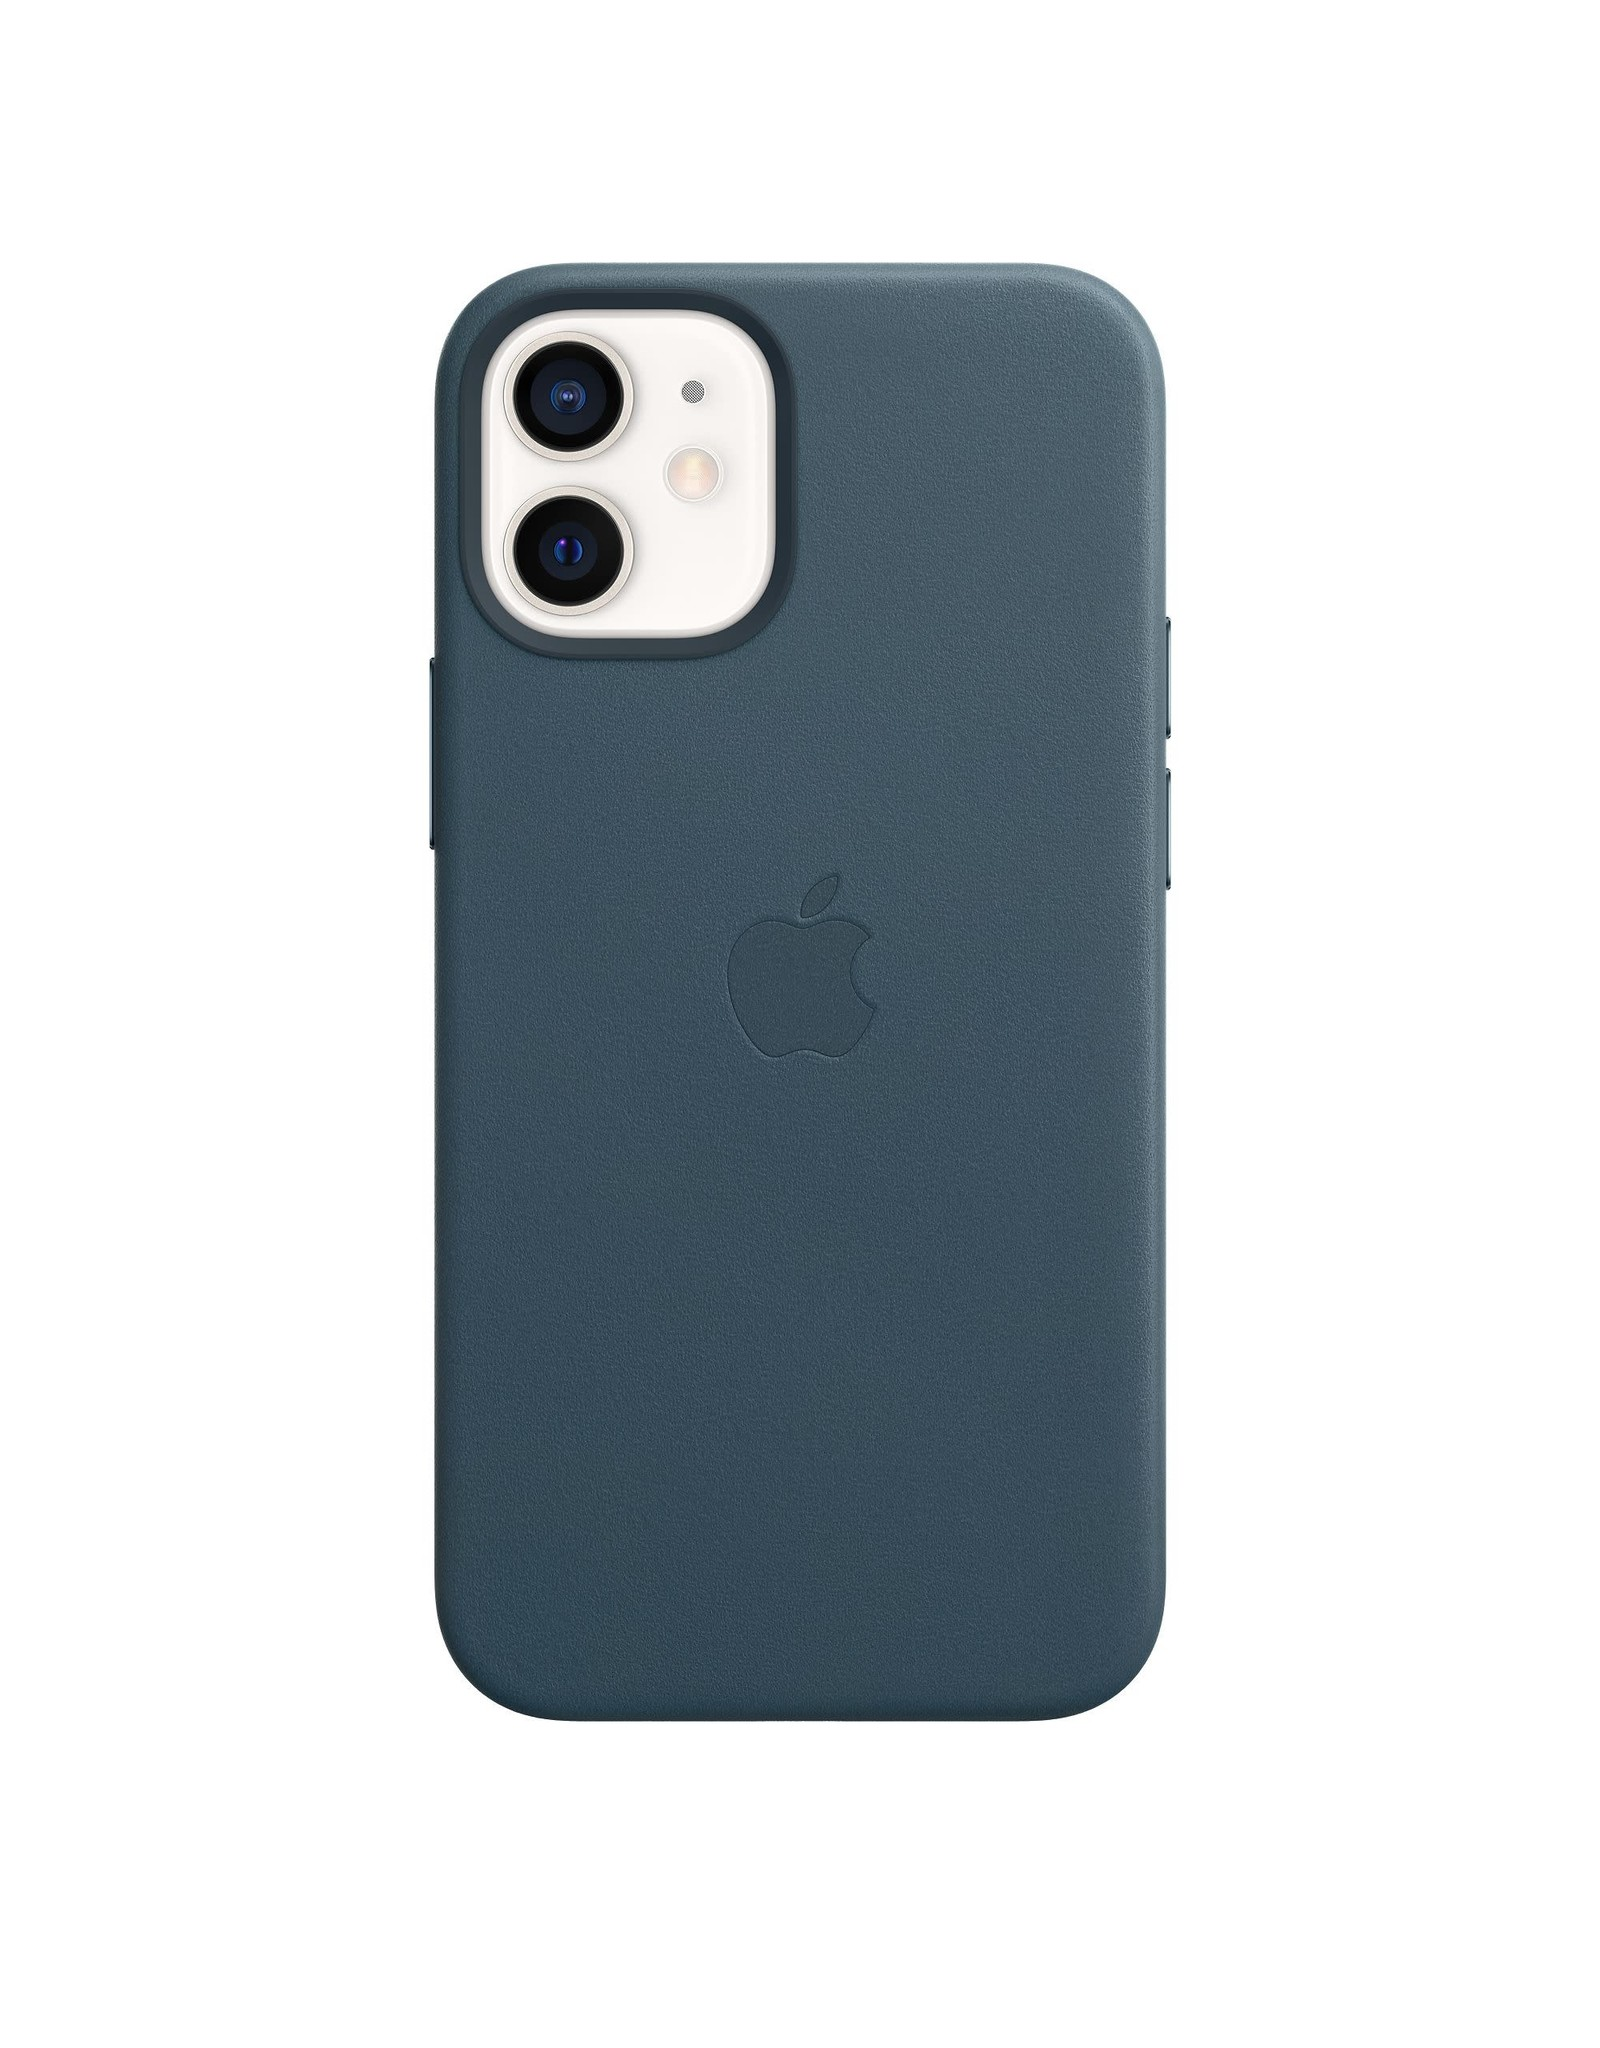 Apple Apple iPhone 12 mini Leather Case with MagSafe — Baltic Blue